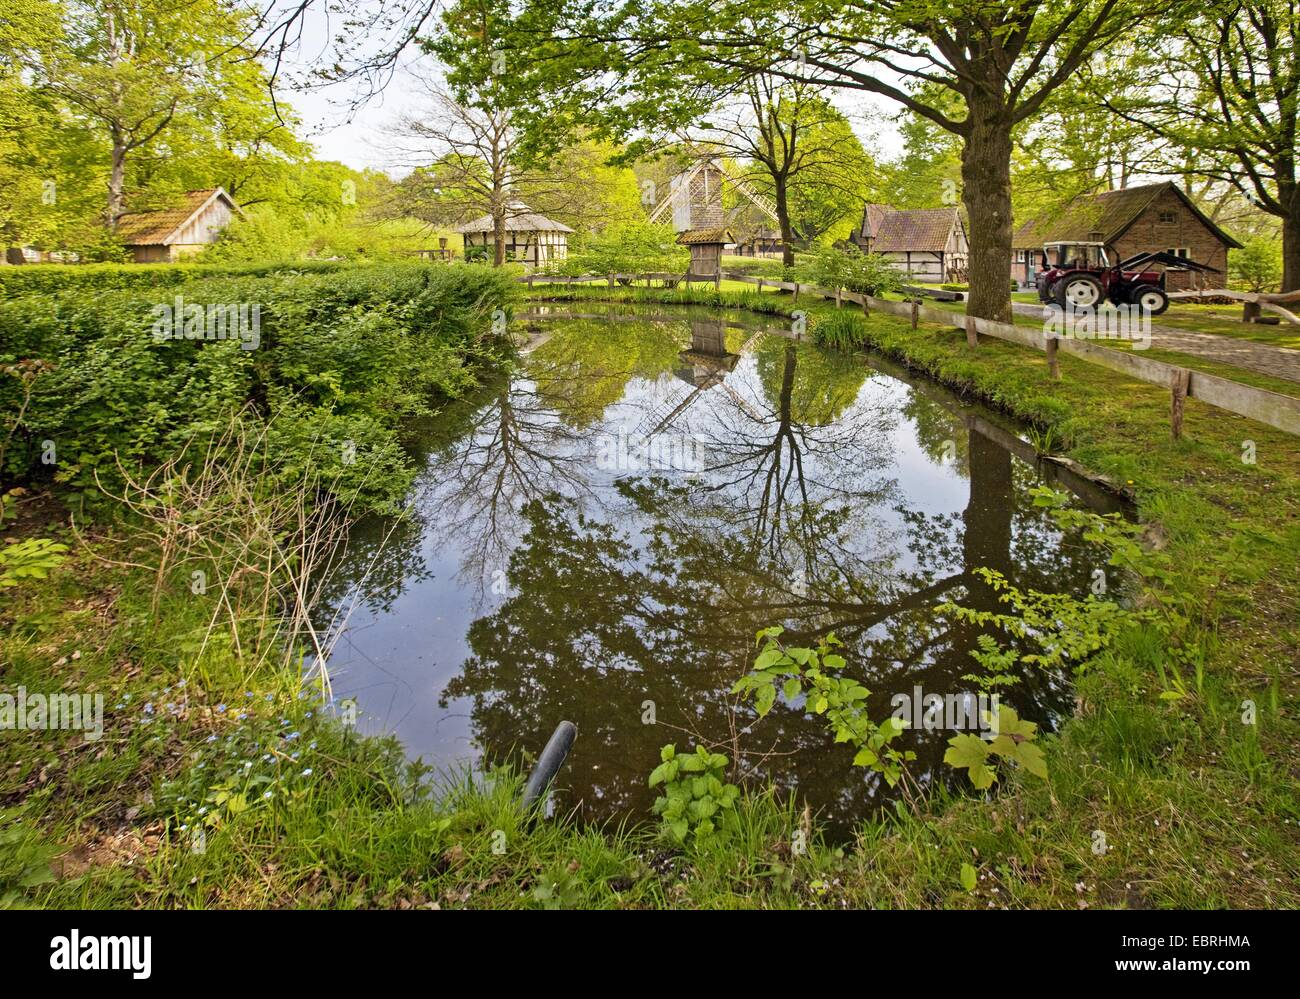 Muehlenhof open-air museum with water ditch, Europe, Germany, North Rhine-Westphalia, Muensterland - Stock Image